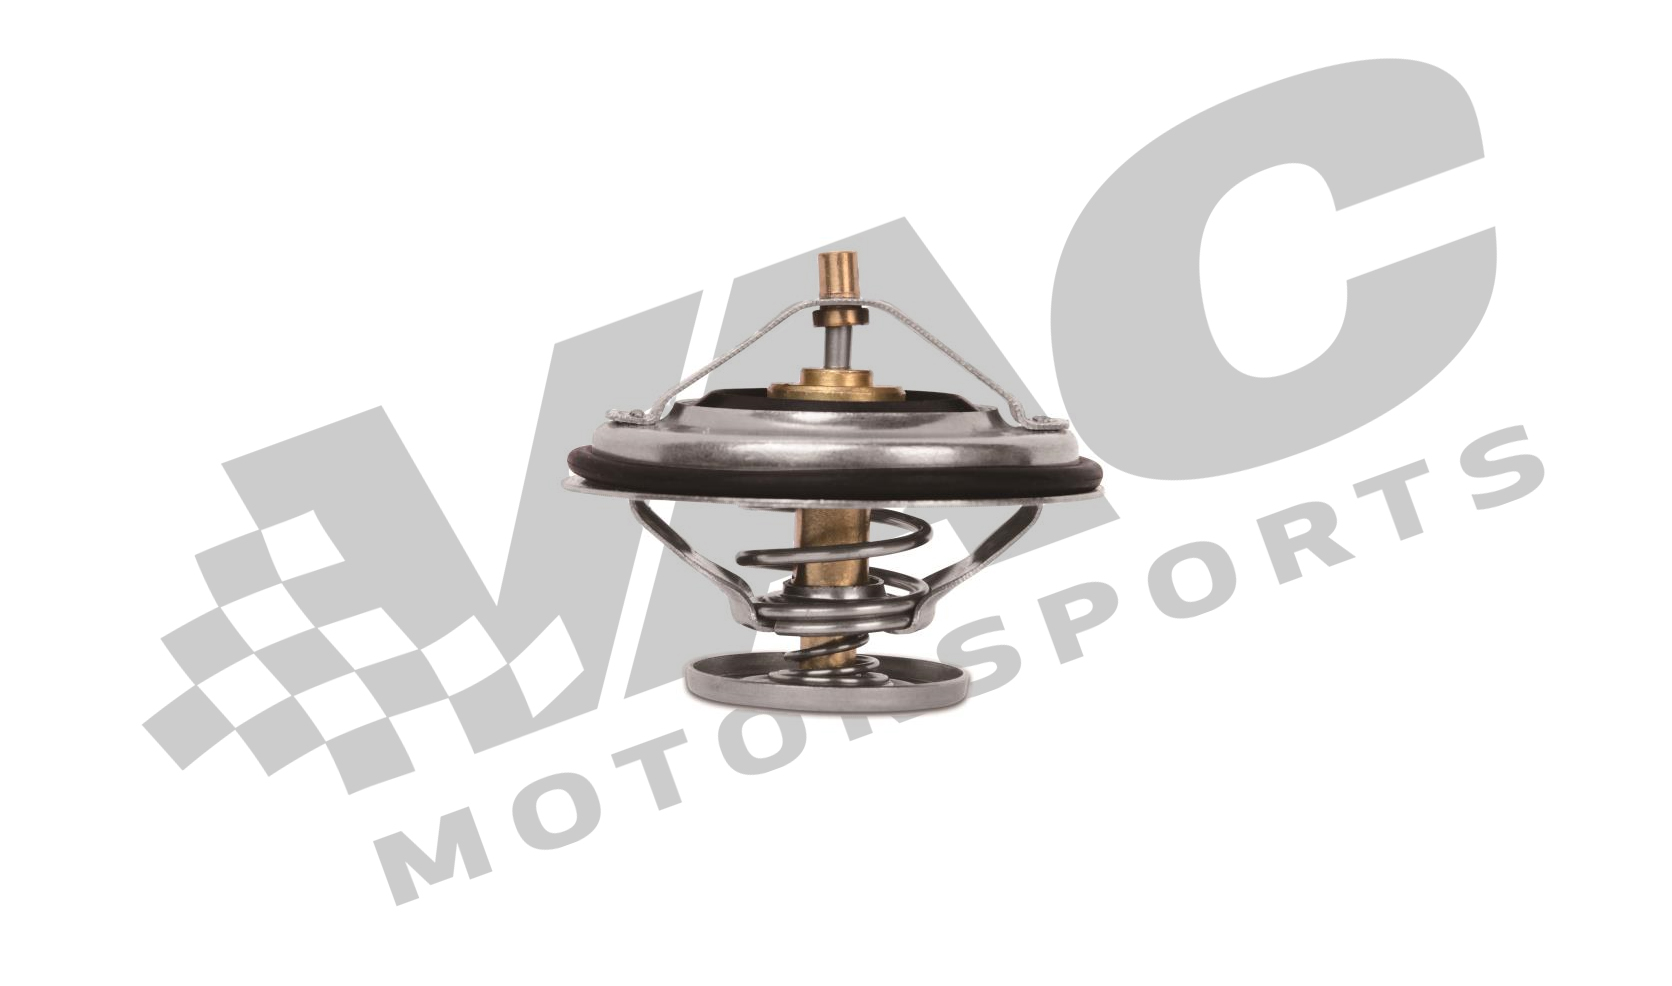 Mishimoto - Racing Thermostat (BMW E36) MAIN